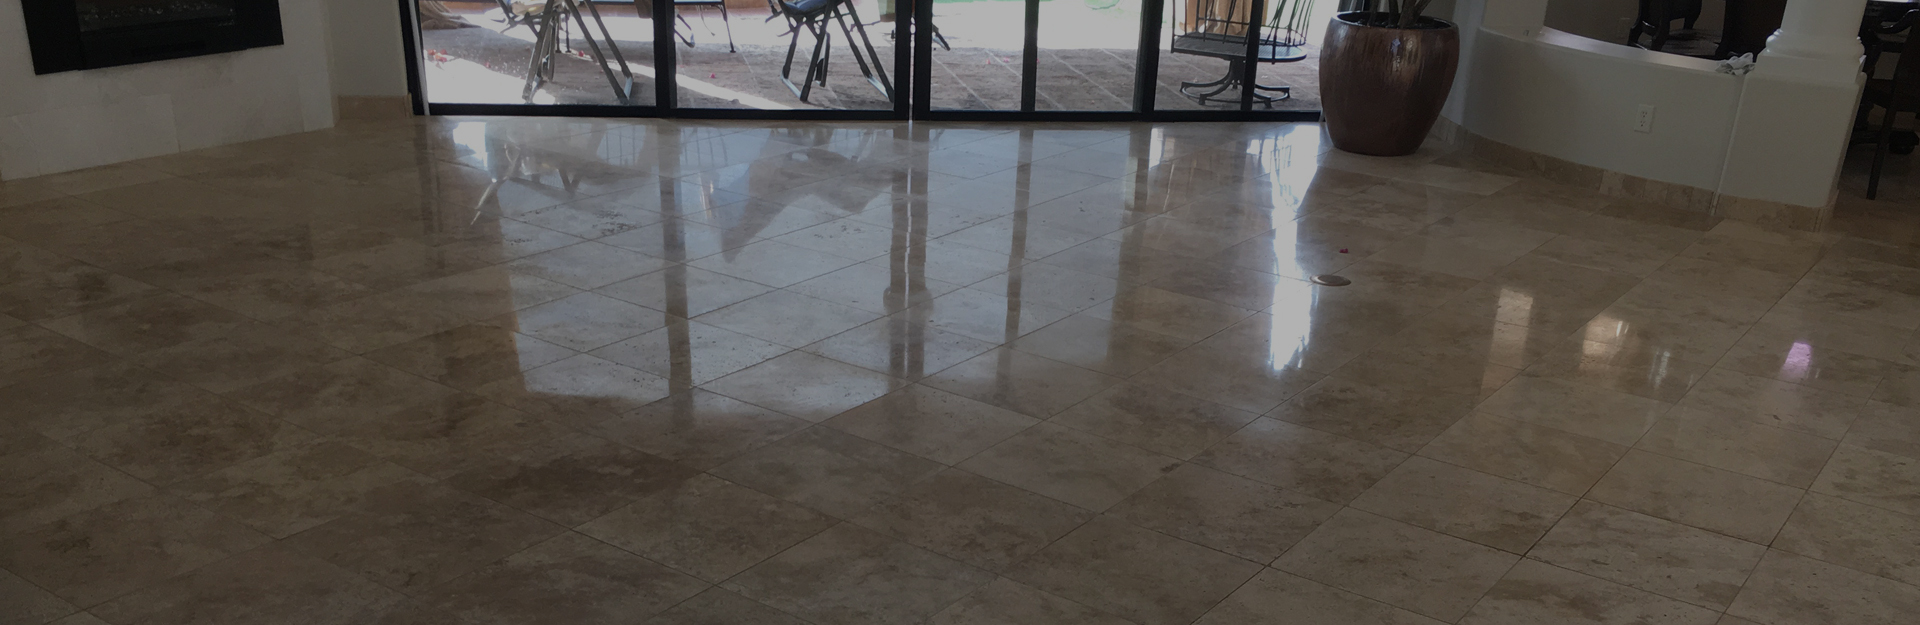 Experience with years in tile and grout cleaning